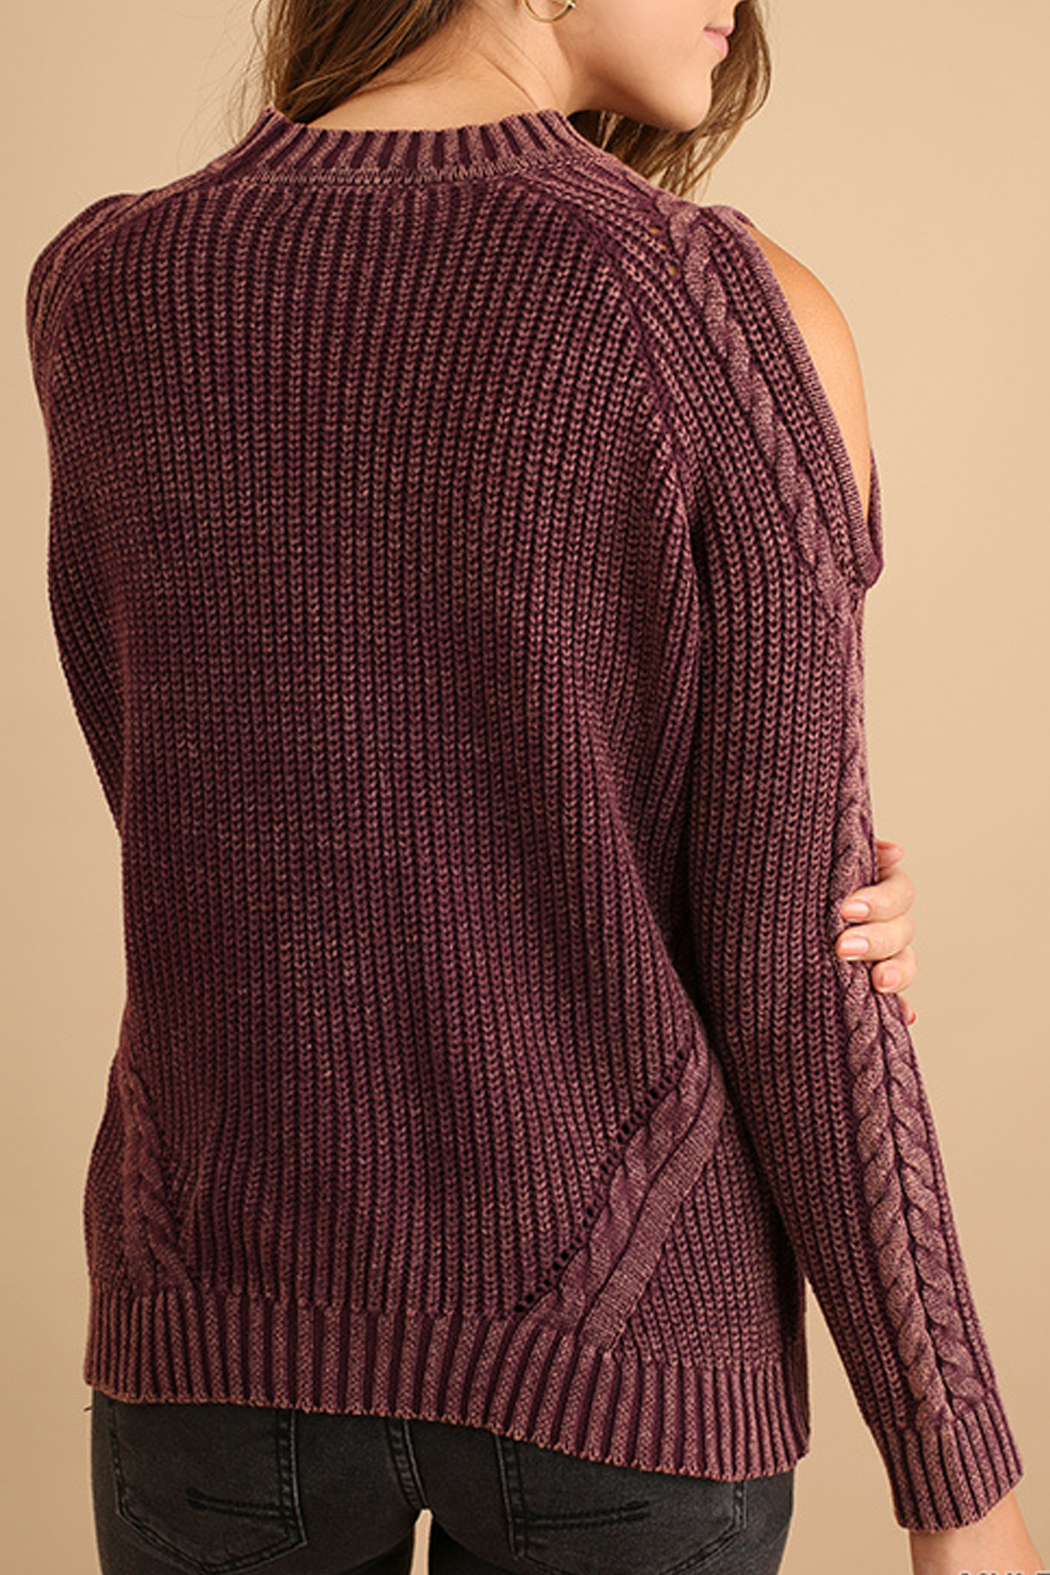 Umgee USA Cutout Knit Sweater - Back Cropped Image